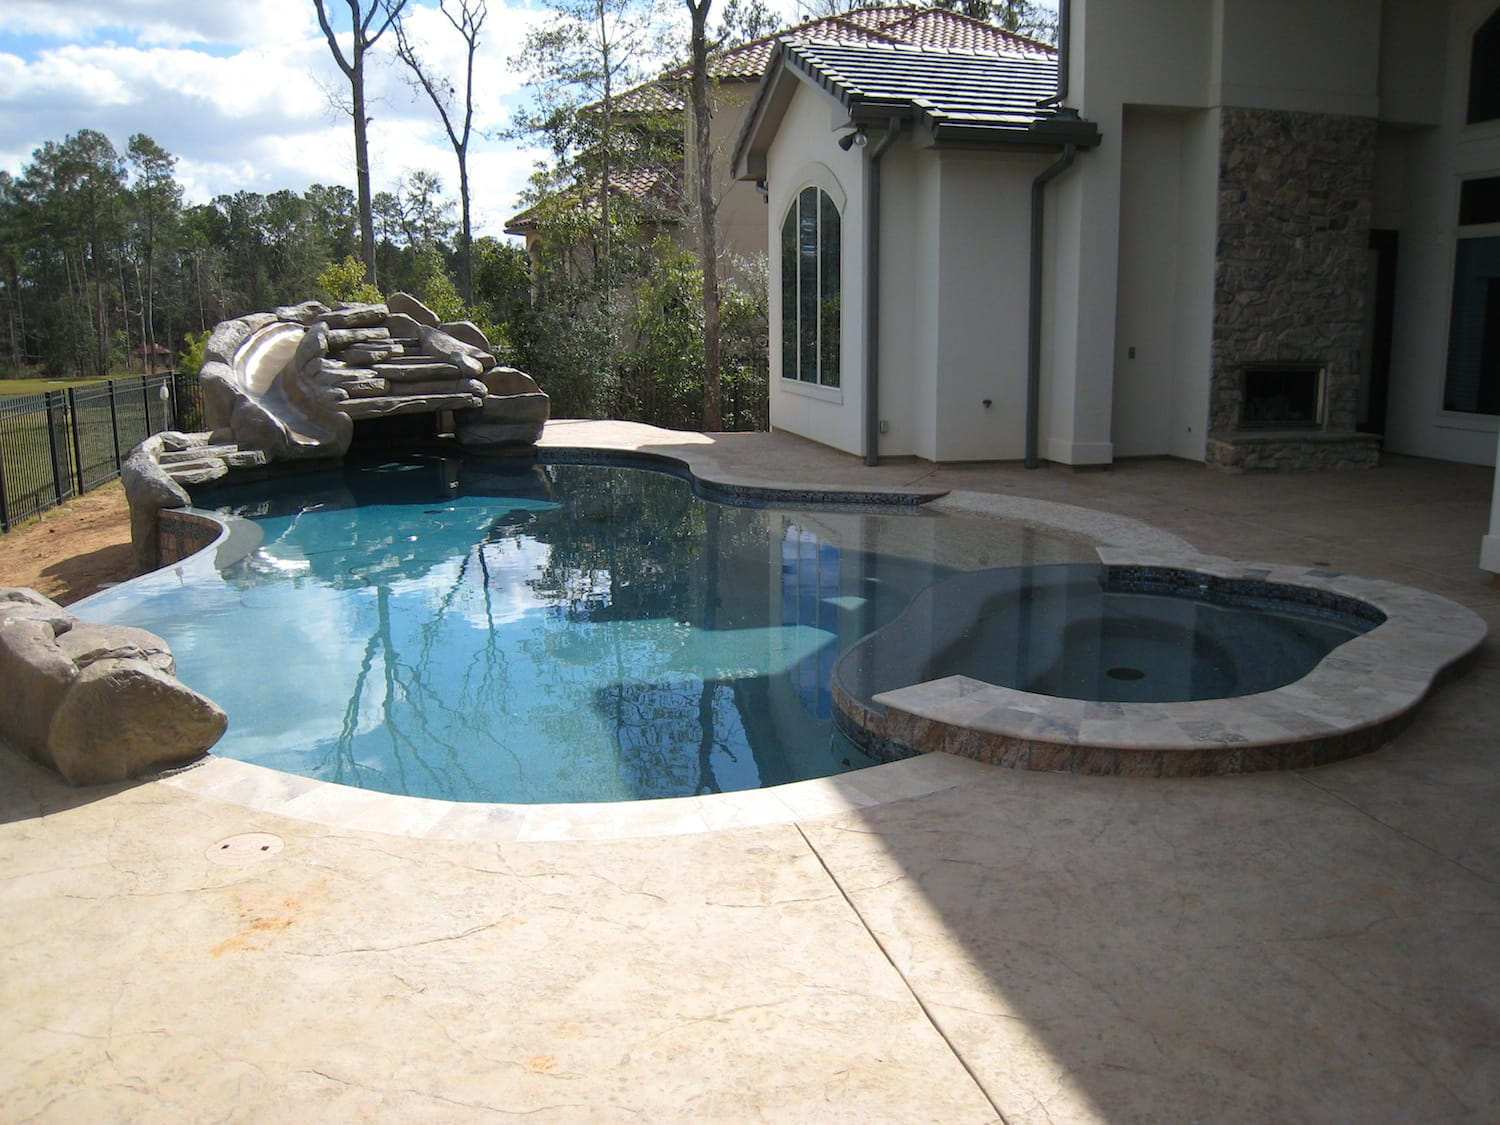 satin-matrix-tahitian-tropical-pool-finish-5